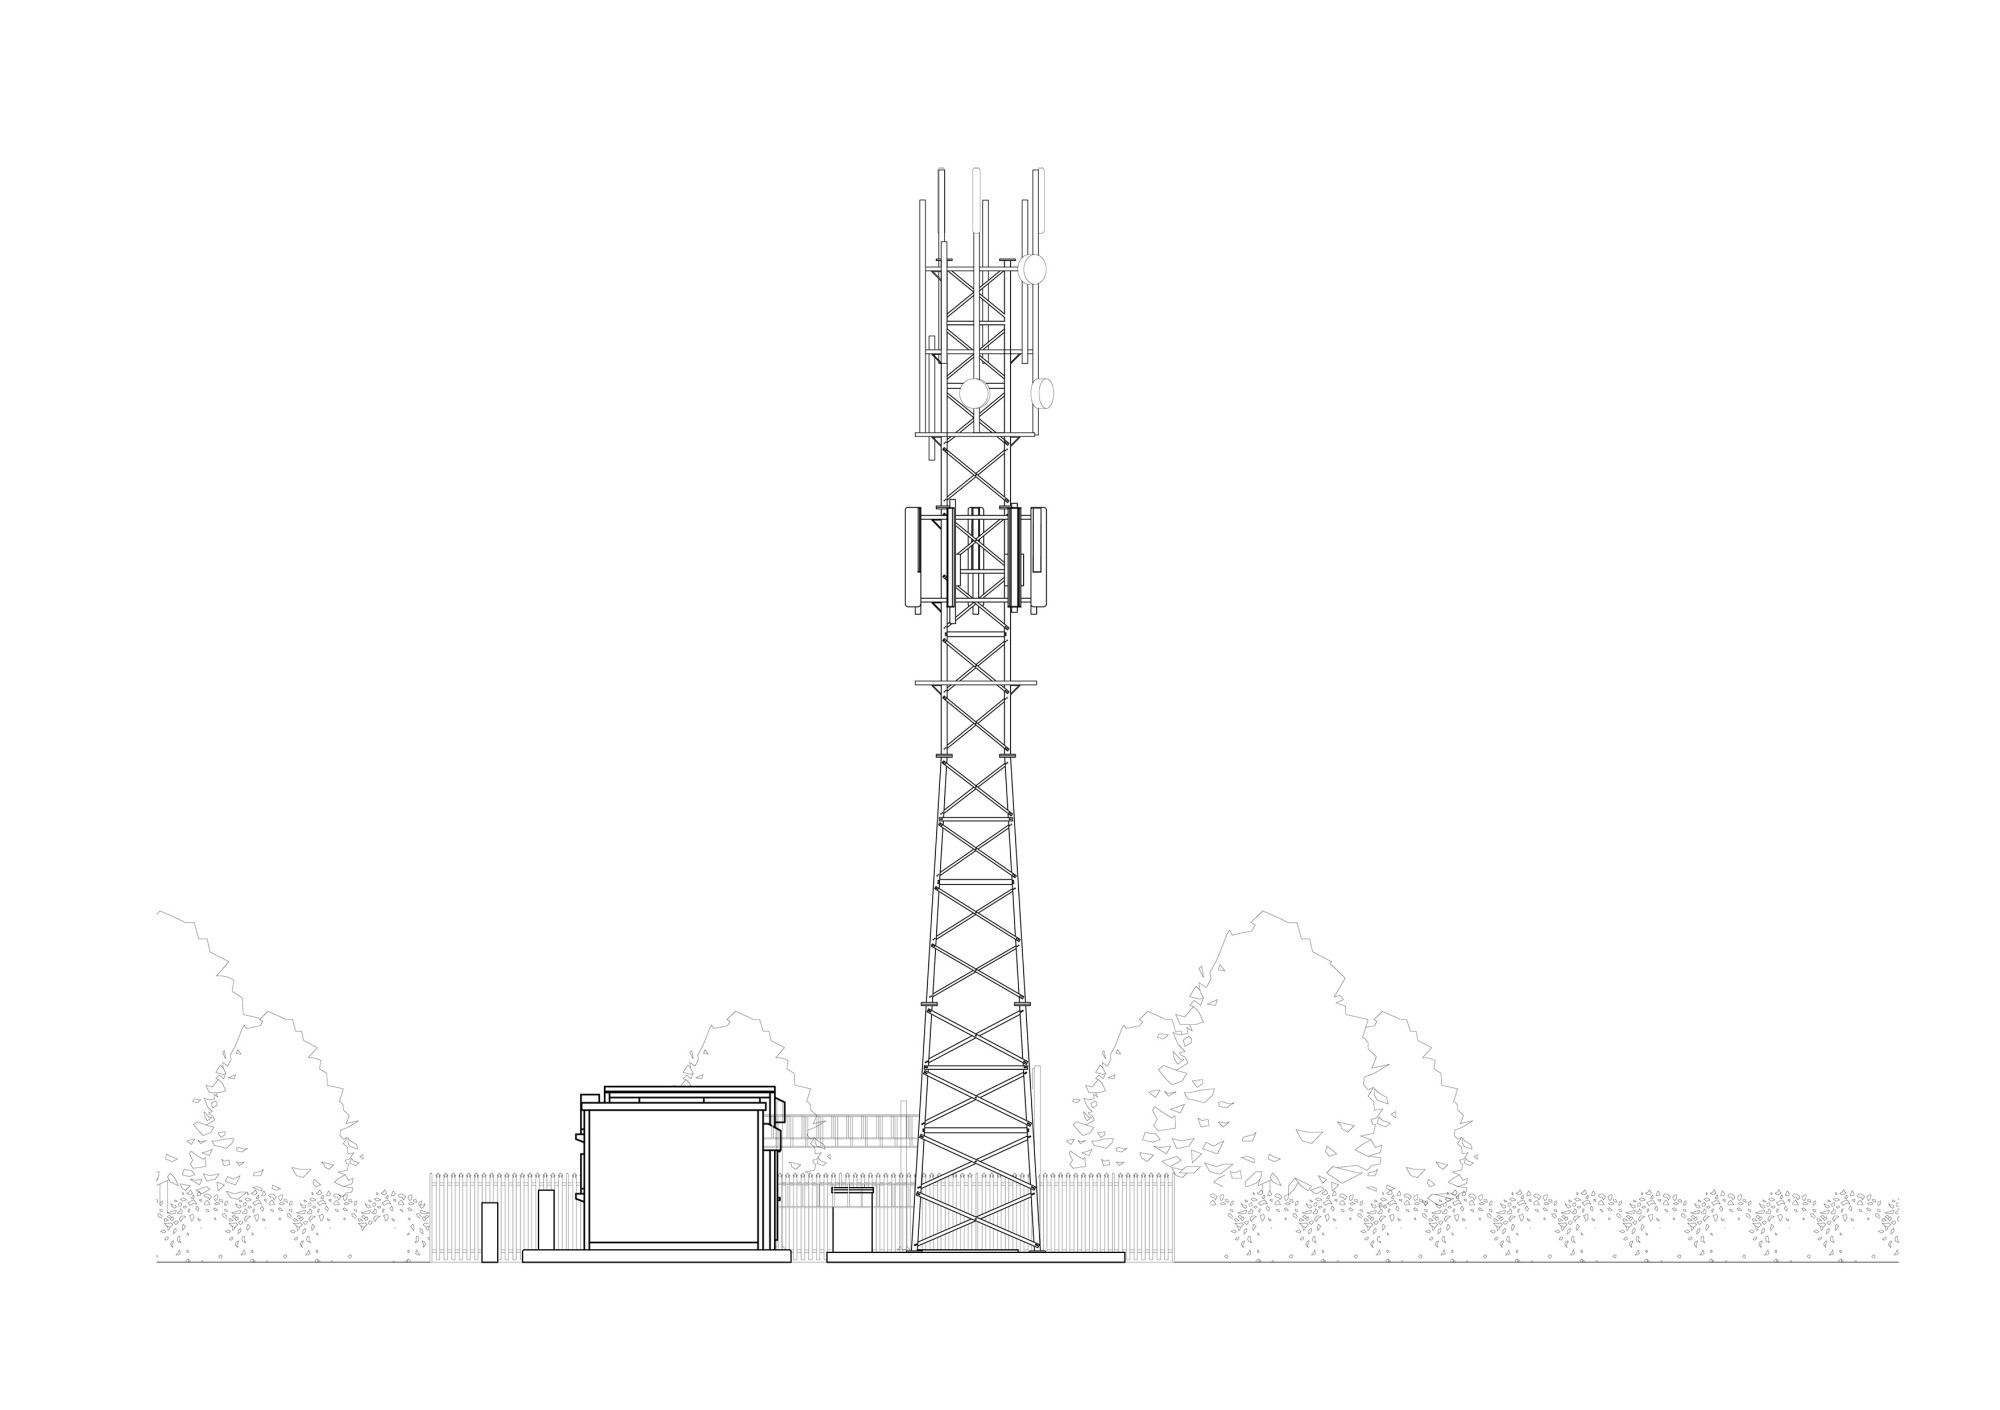 Lower Telecom Tower Elevation